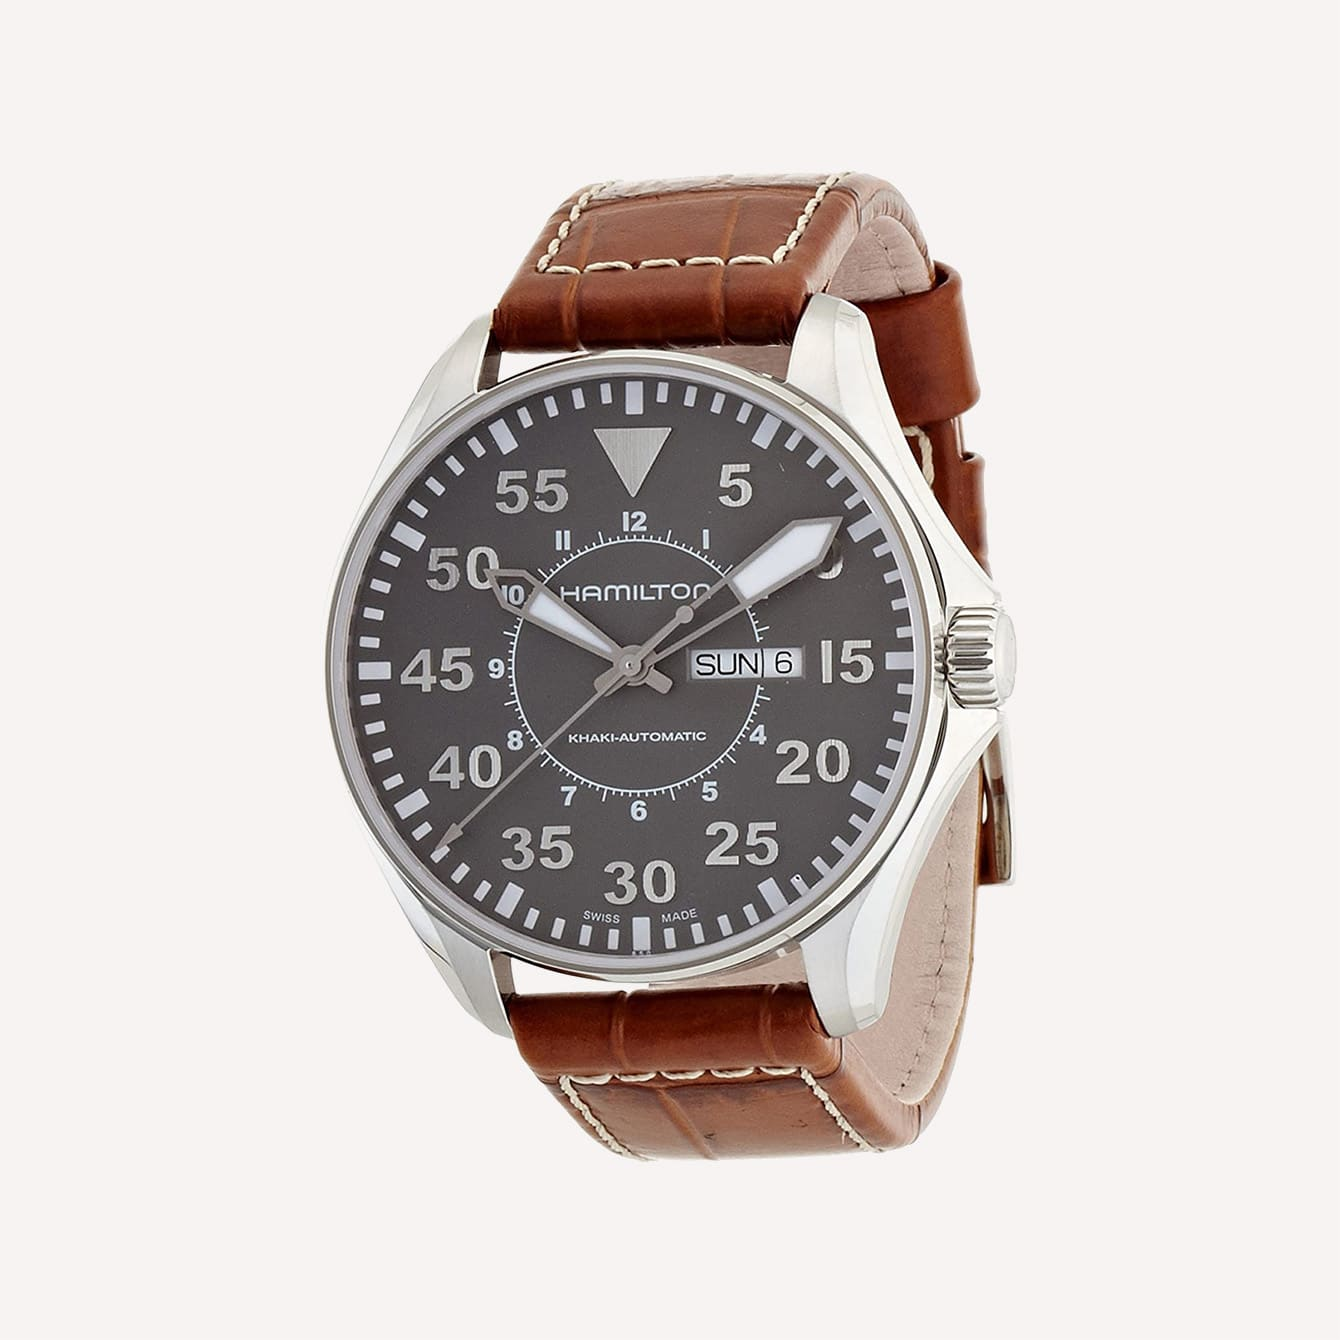 Hamilton Khaki Pilot Watch